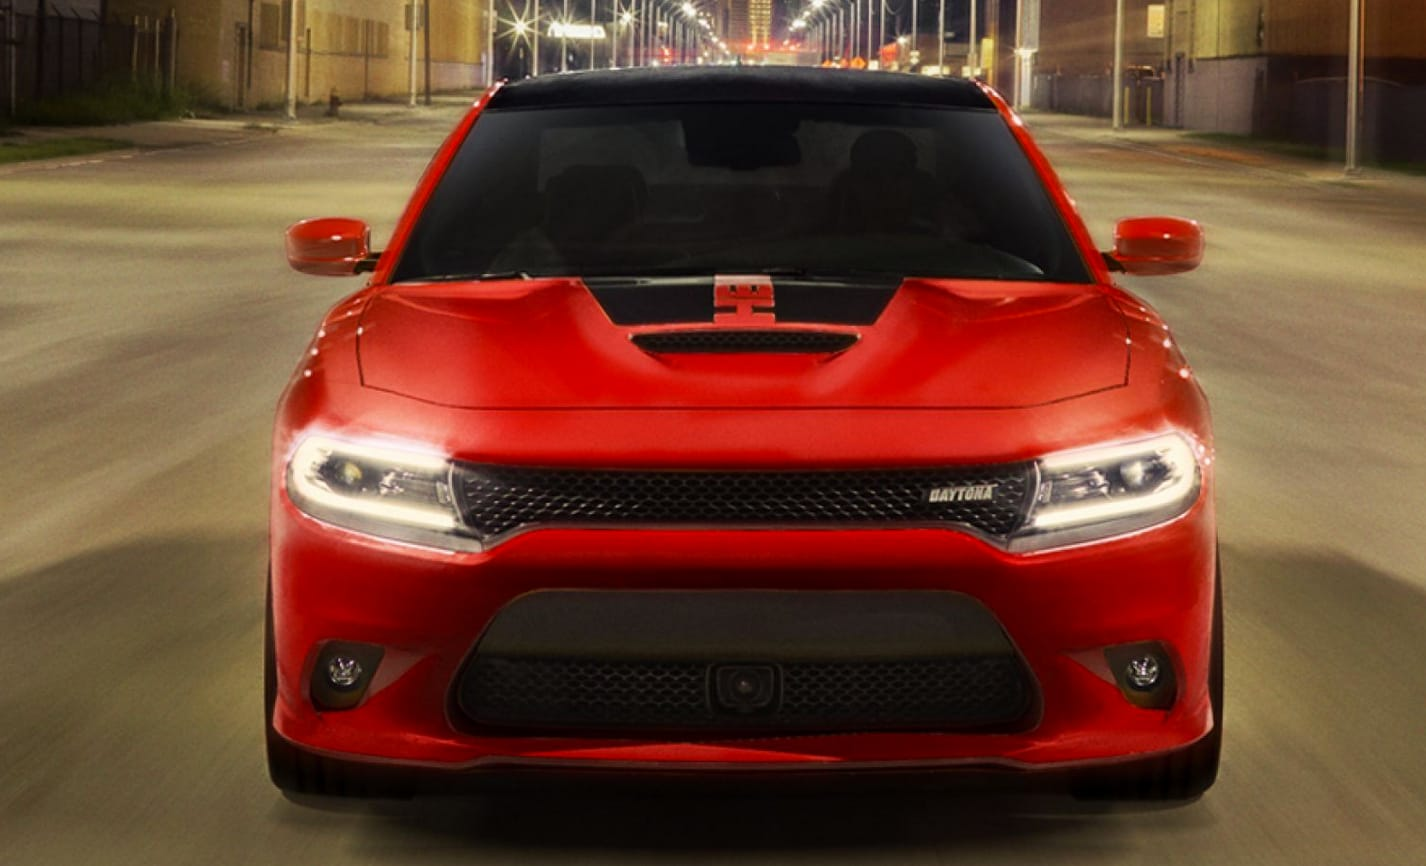 2018 dodge charger near me queens ny. Black Bedroom Furniture Sets. Home Design Ideas